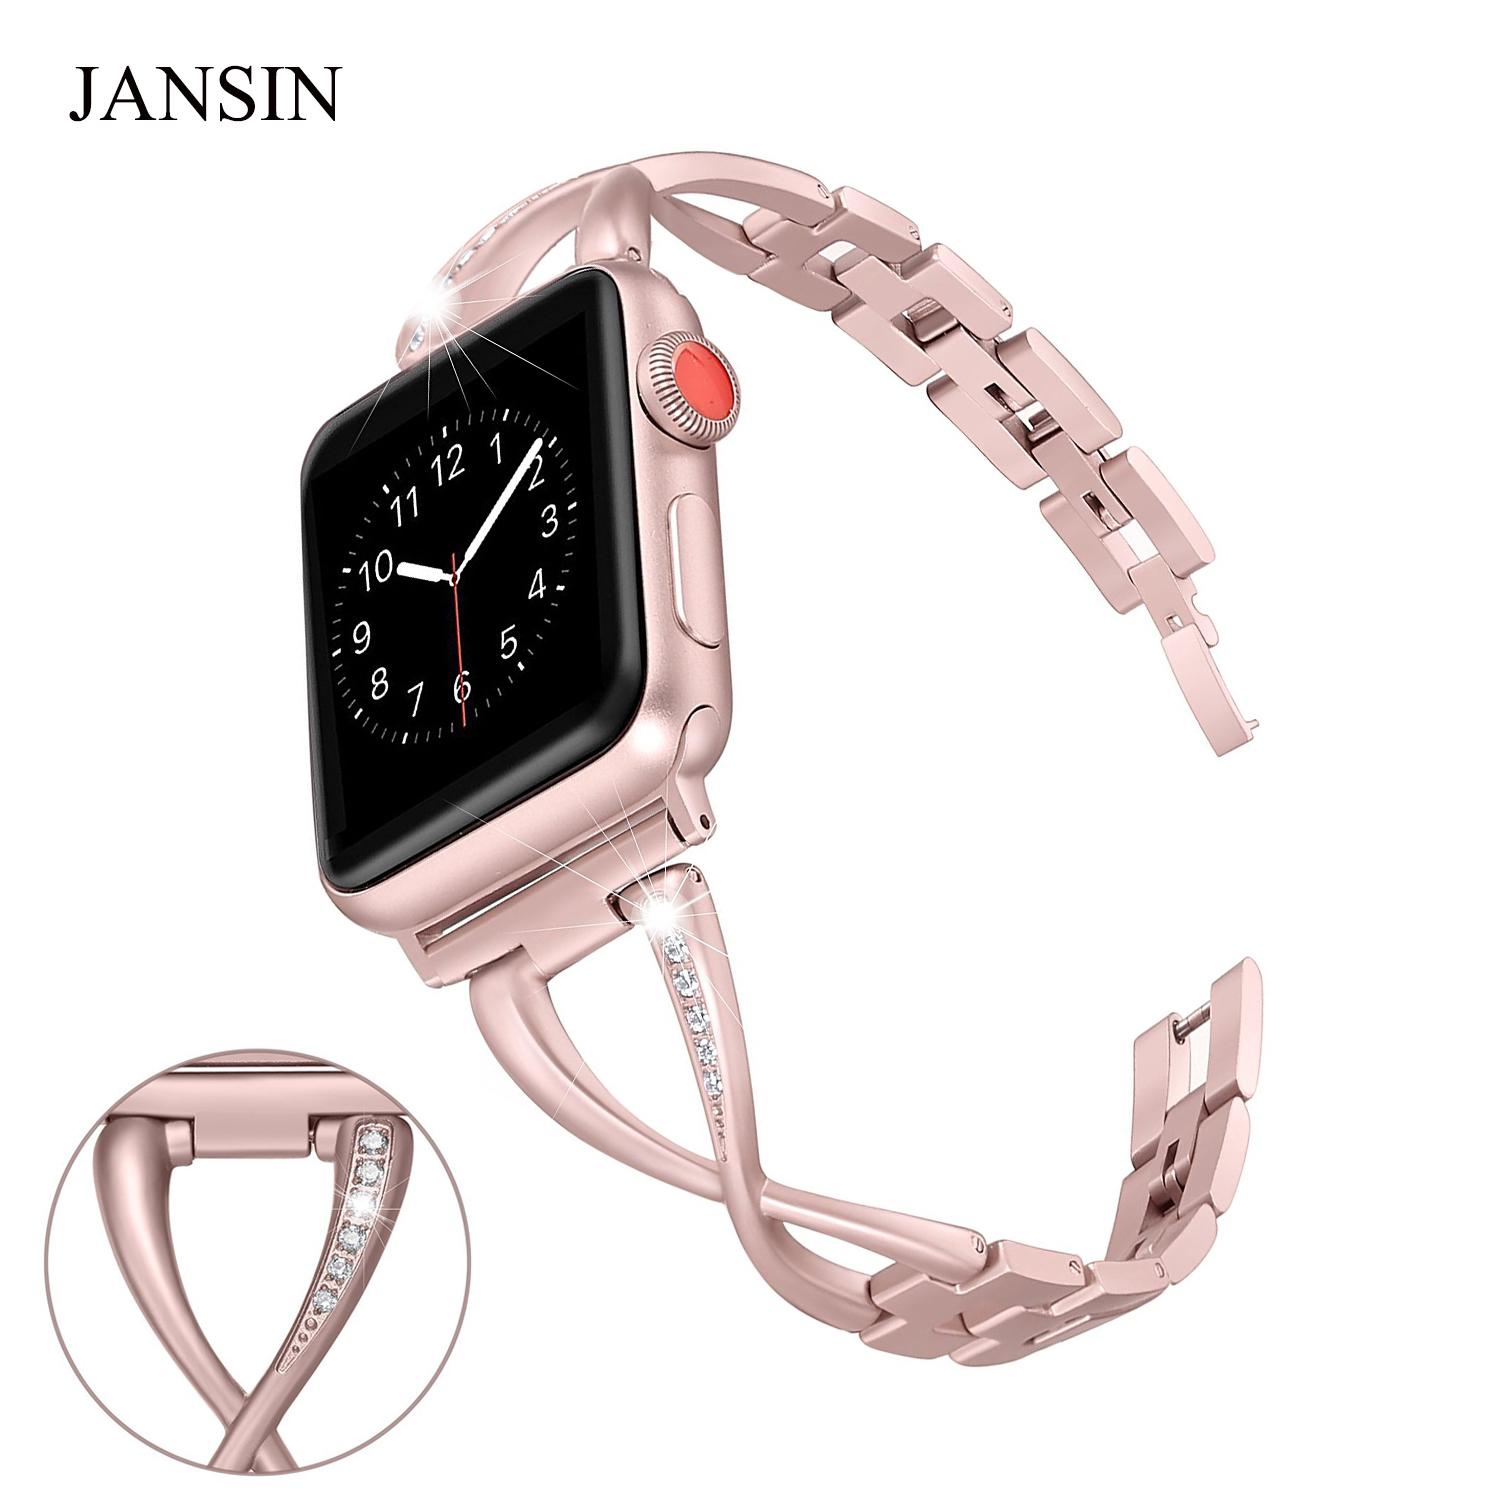 JANSIN Women Watch band for Apple Watch Bands 38mm 42mm Adjustable Stainless Steel Strap for iwatch